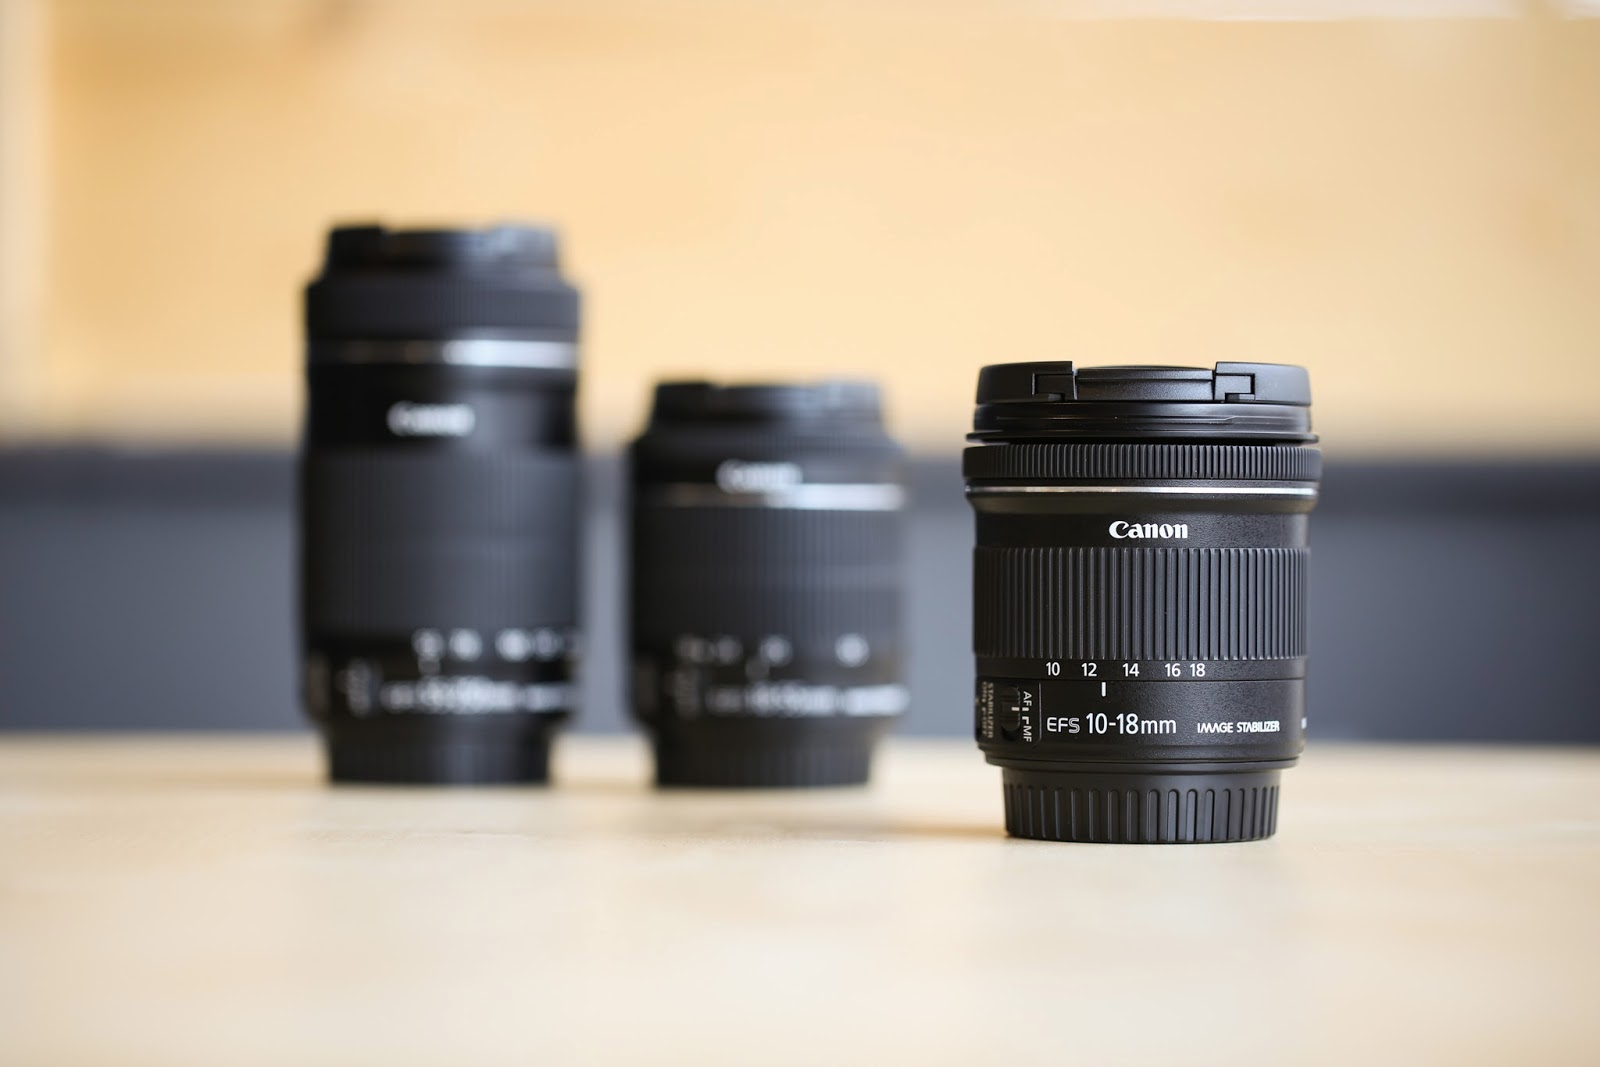 New Canon Ef S 10 18 Is Stm Every Photo Store Eos 70d Lensa 55 Dslr Kit This Lens Also The Last Piece Of Puzzle For A Complete Focal Range Category Now Has Three Lenses That Fit Together Perfectly In